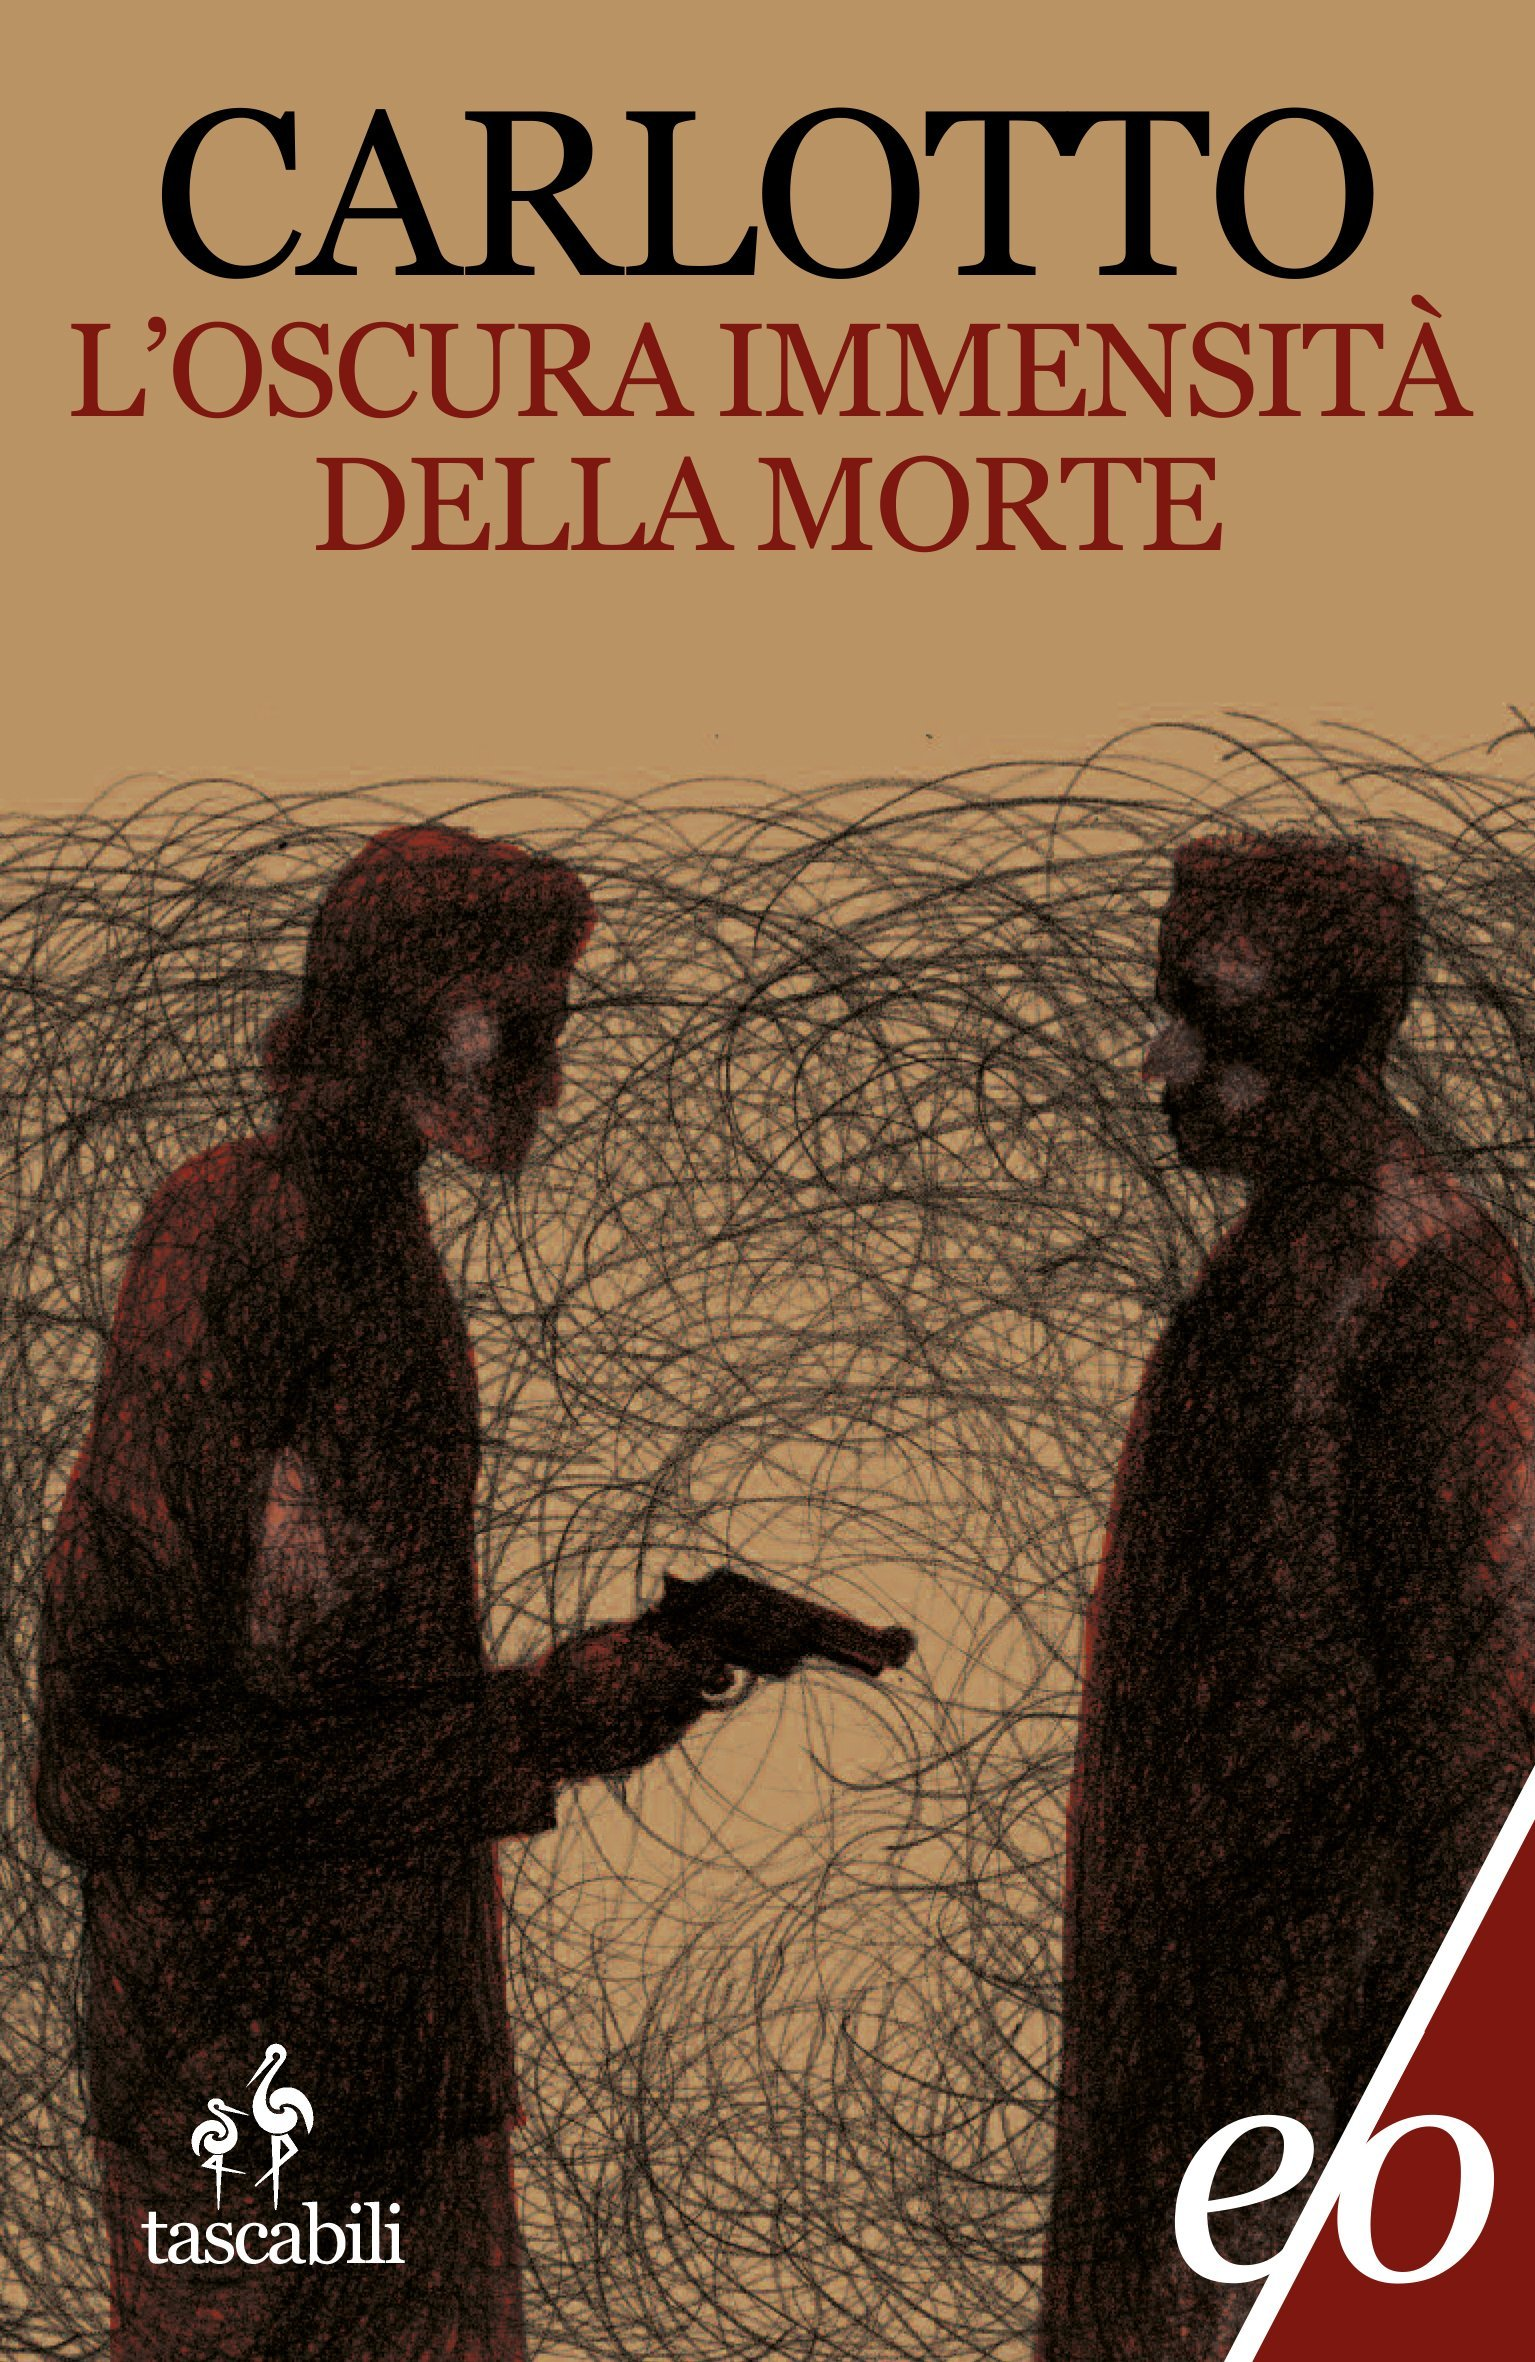 L'oscura immensità della morte (Tascabili e/o Vol. 171) (Italian Edition)